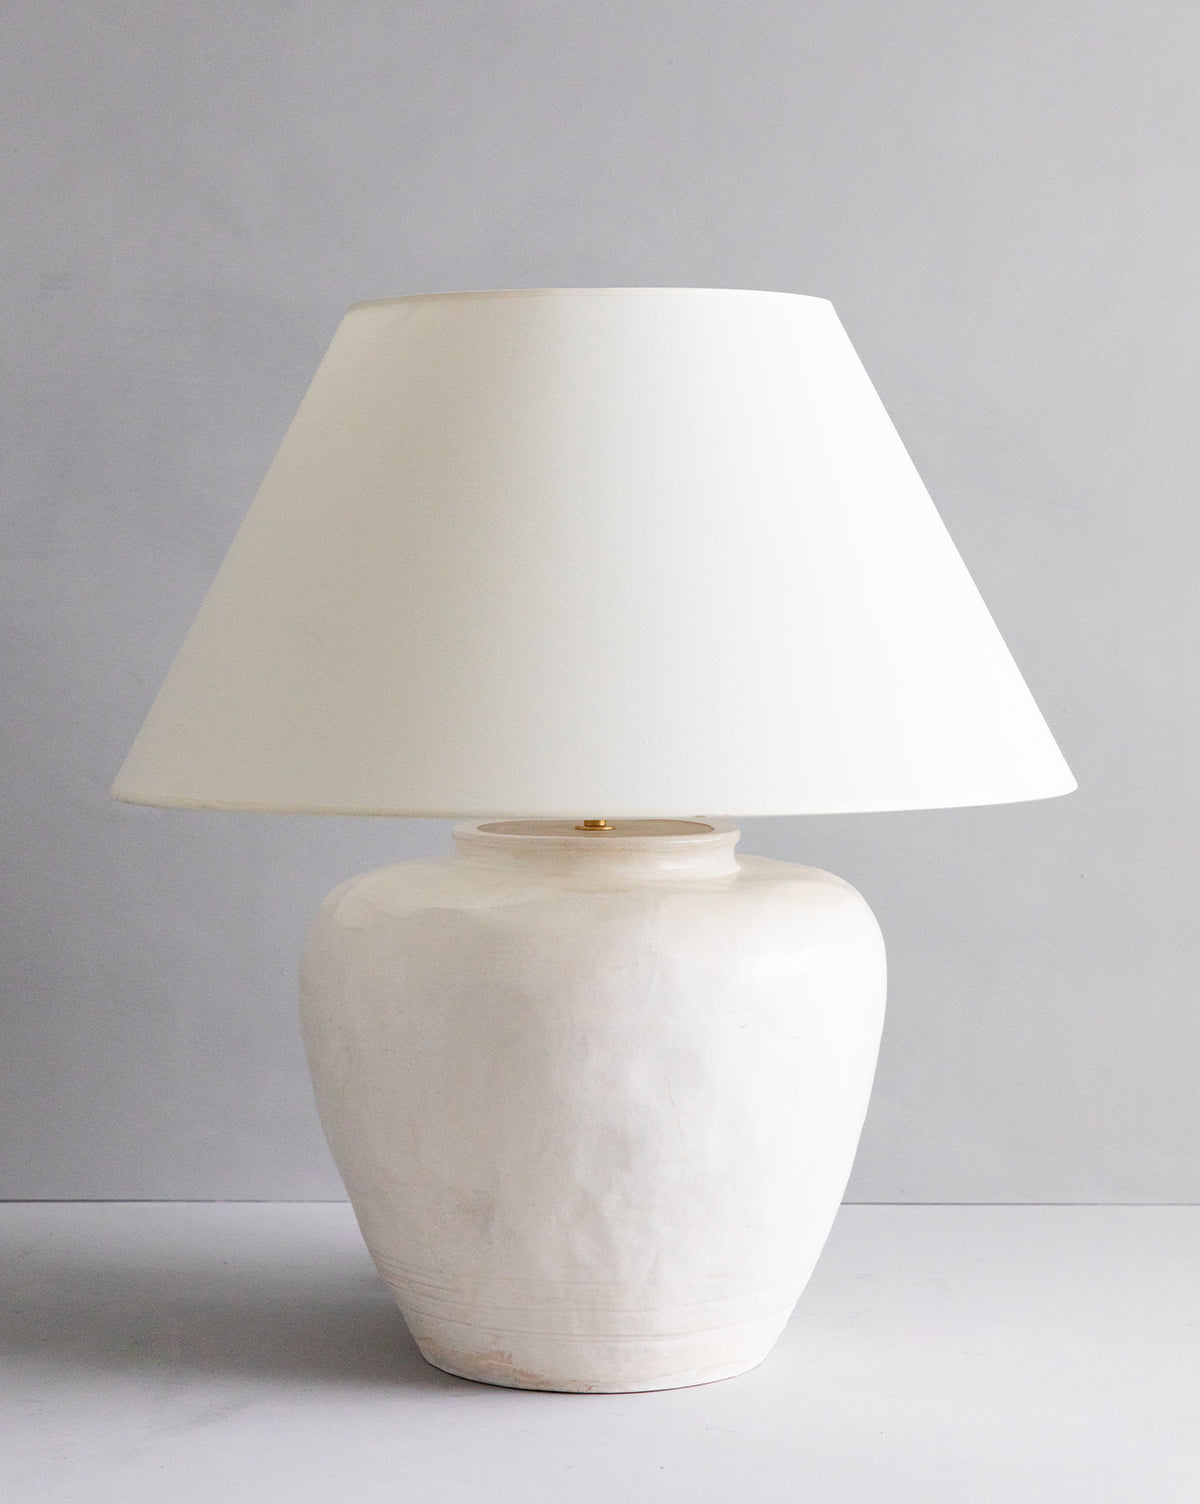 Vintage Ceramic Vase Table Lamp